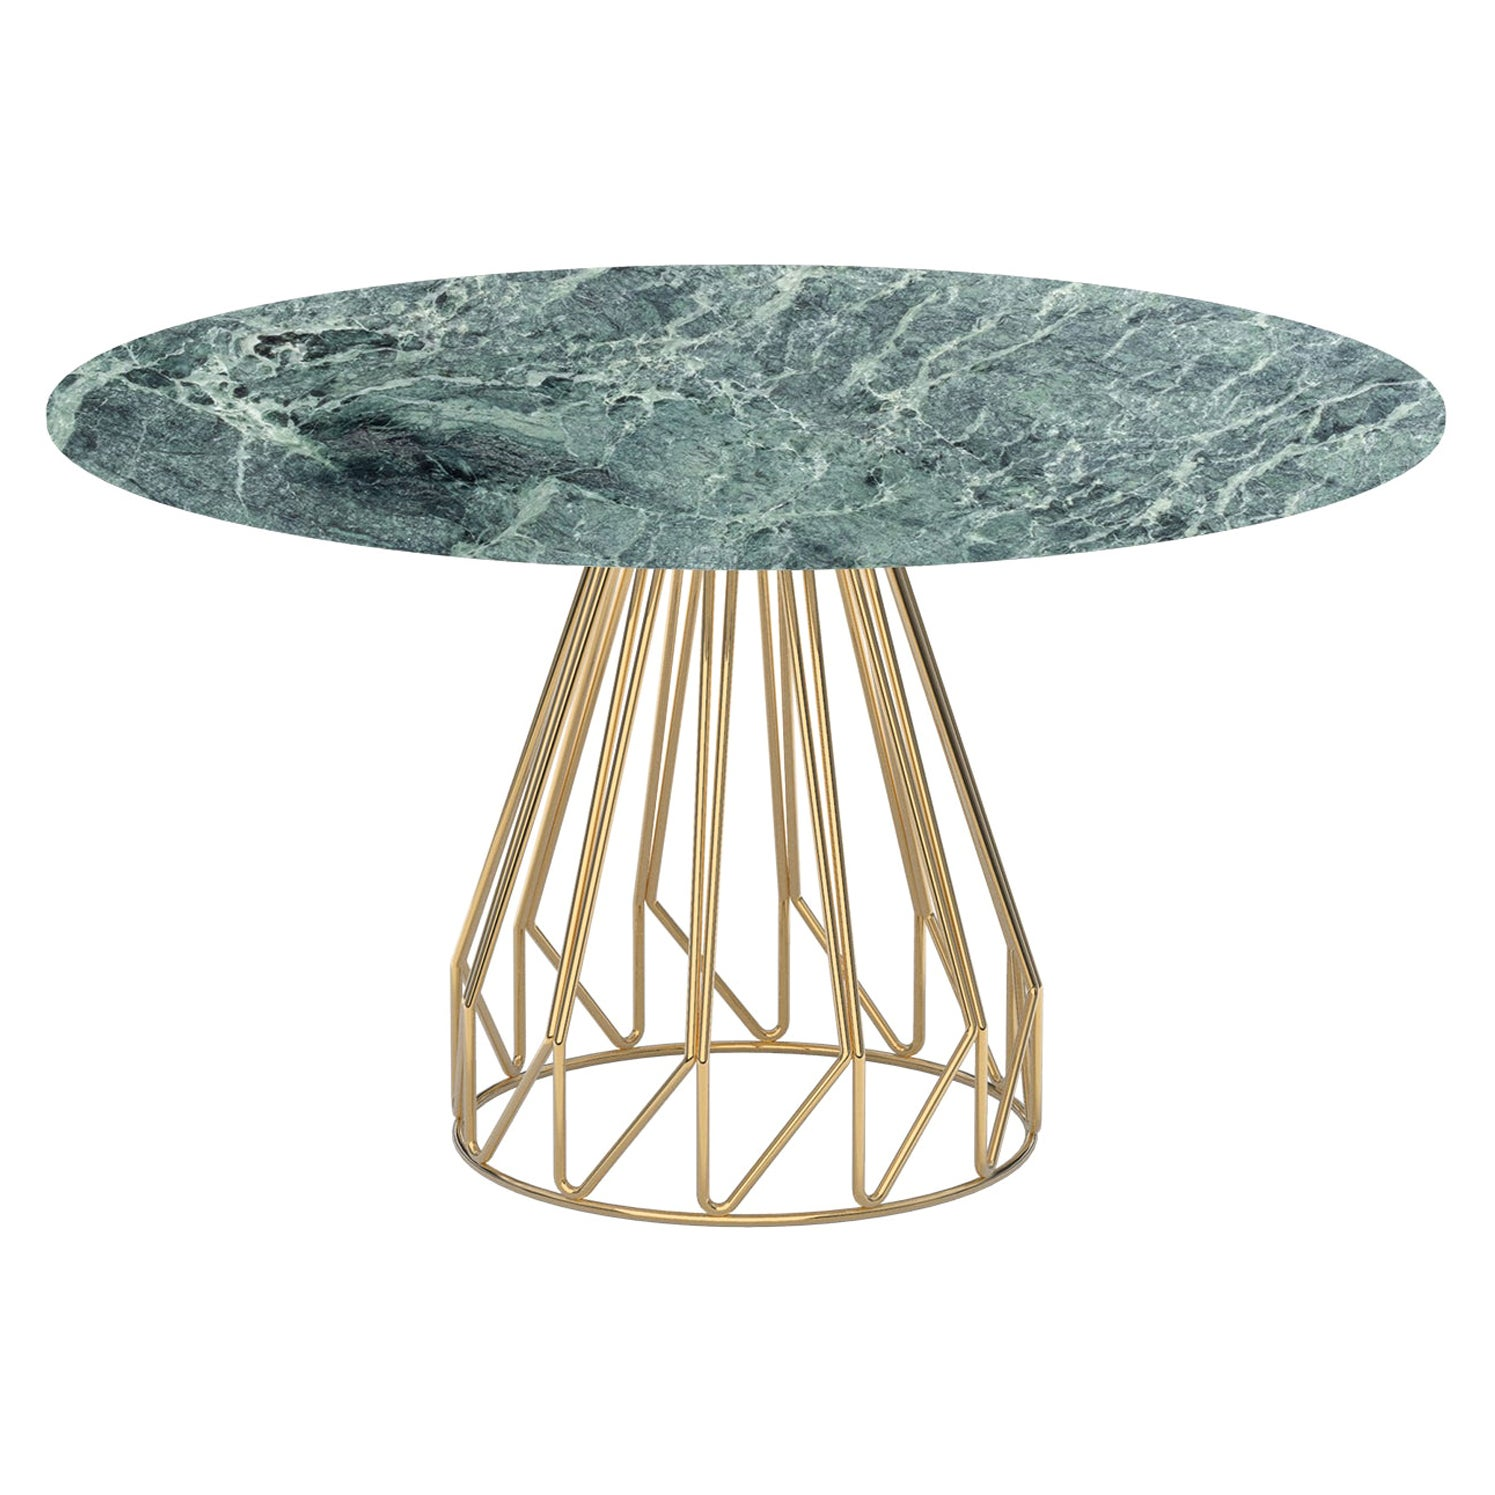 Contemporary Minimalist Table Gold, Green Alps Made in Italy by LapiegaWD